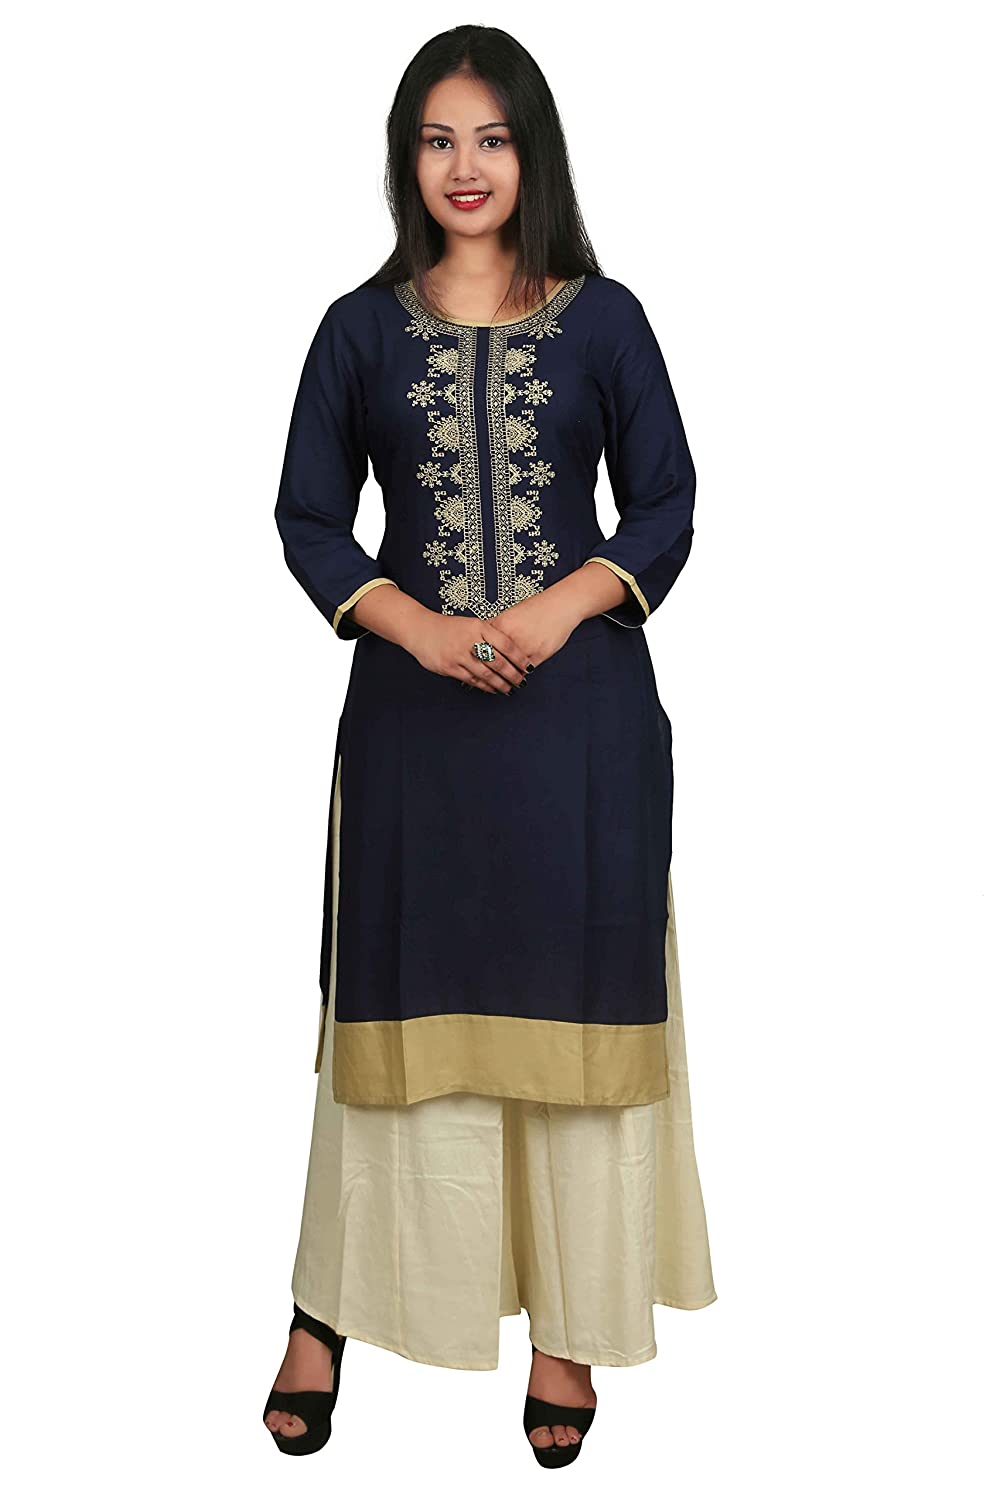 Blue Embroidered 3/4 Sleeve Cotton Women's Kurta and Palazzo Set Indian Handicrfats Export D12-Blue-Beige-XXL